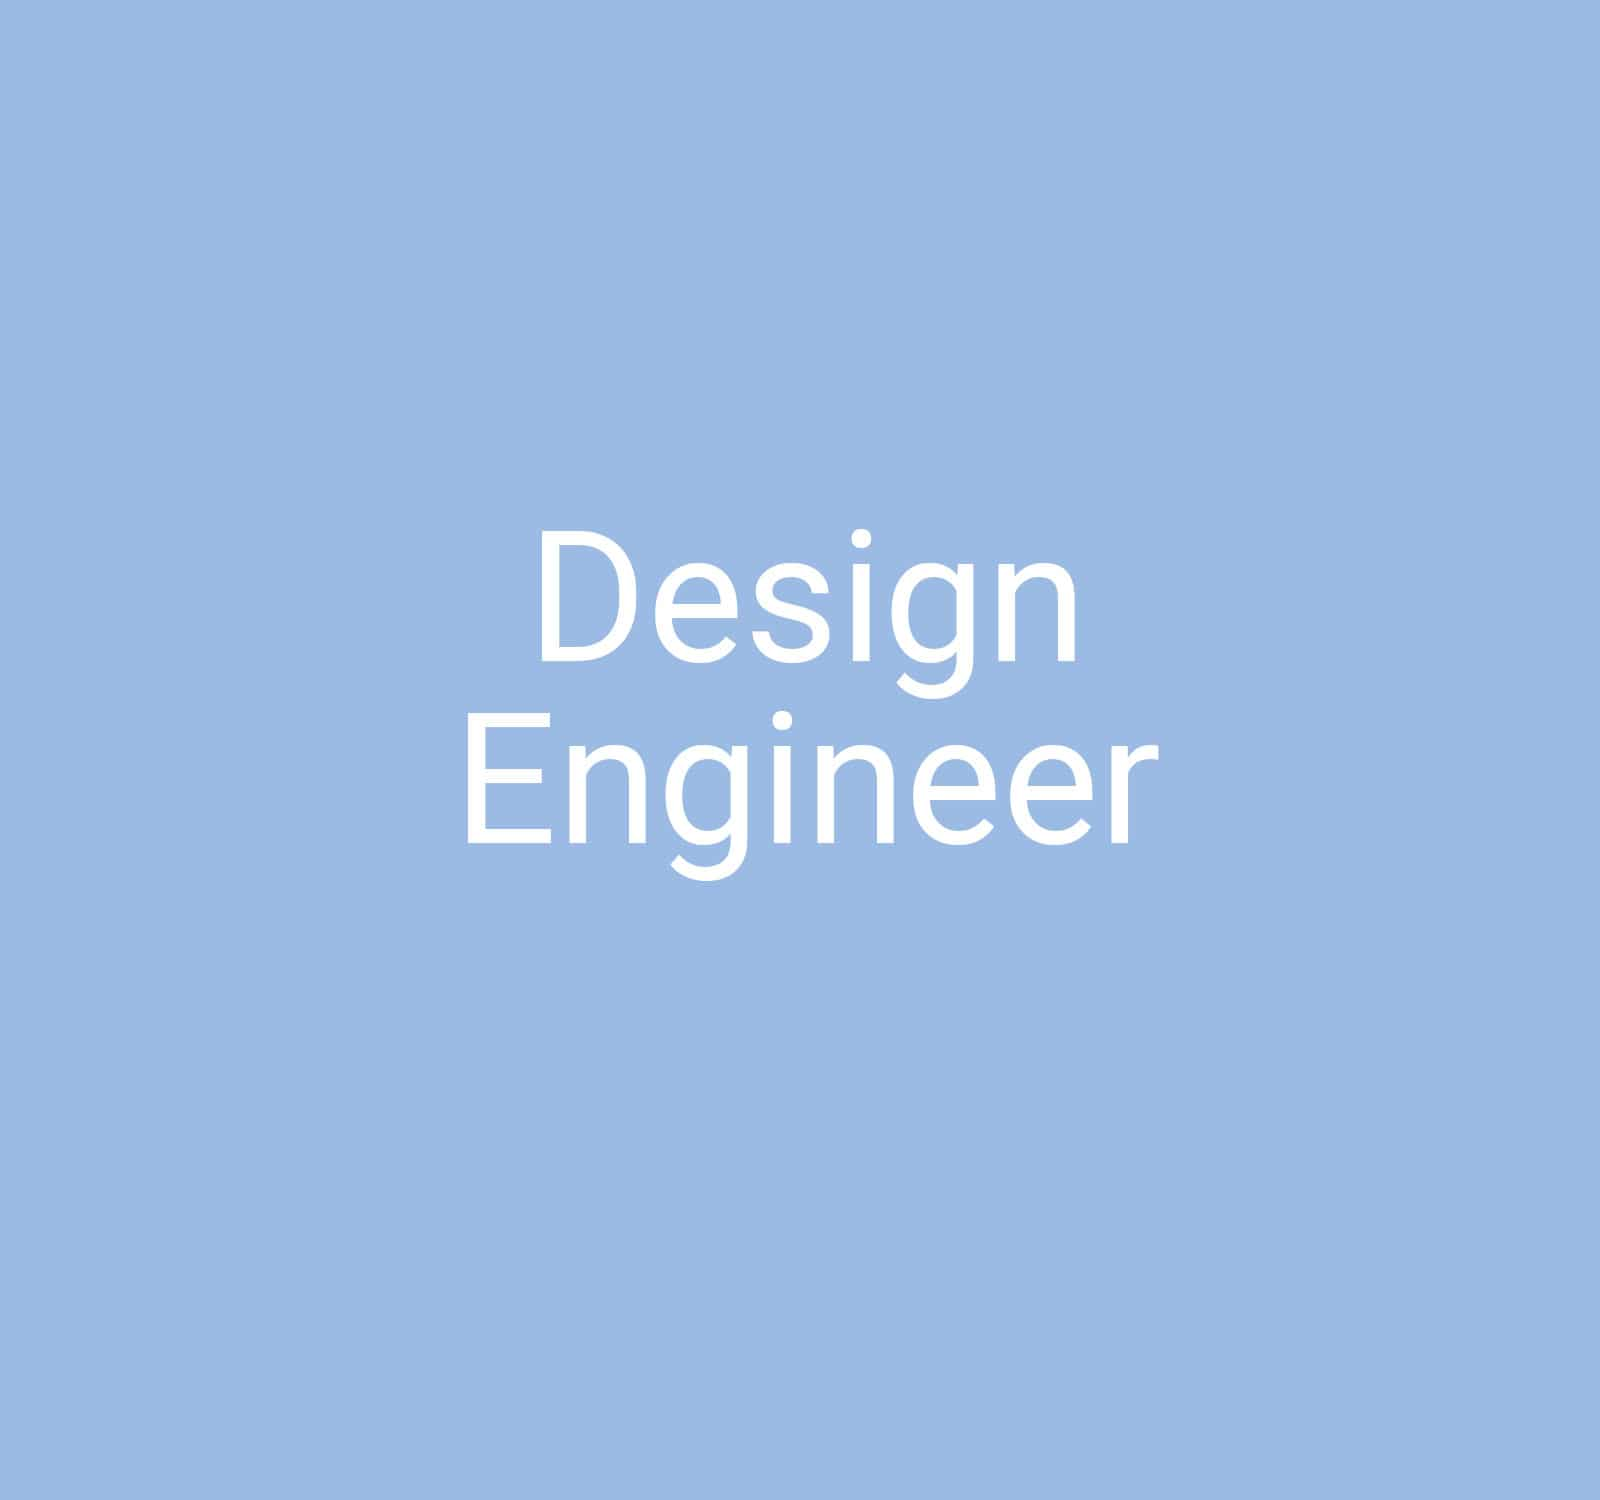 Design Engineer